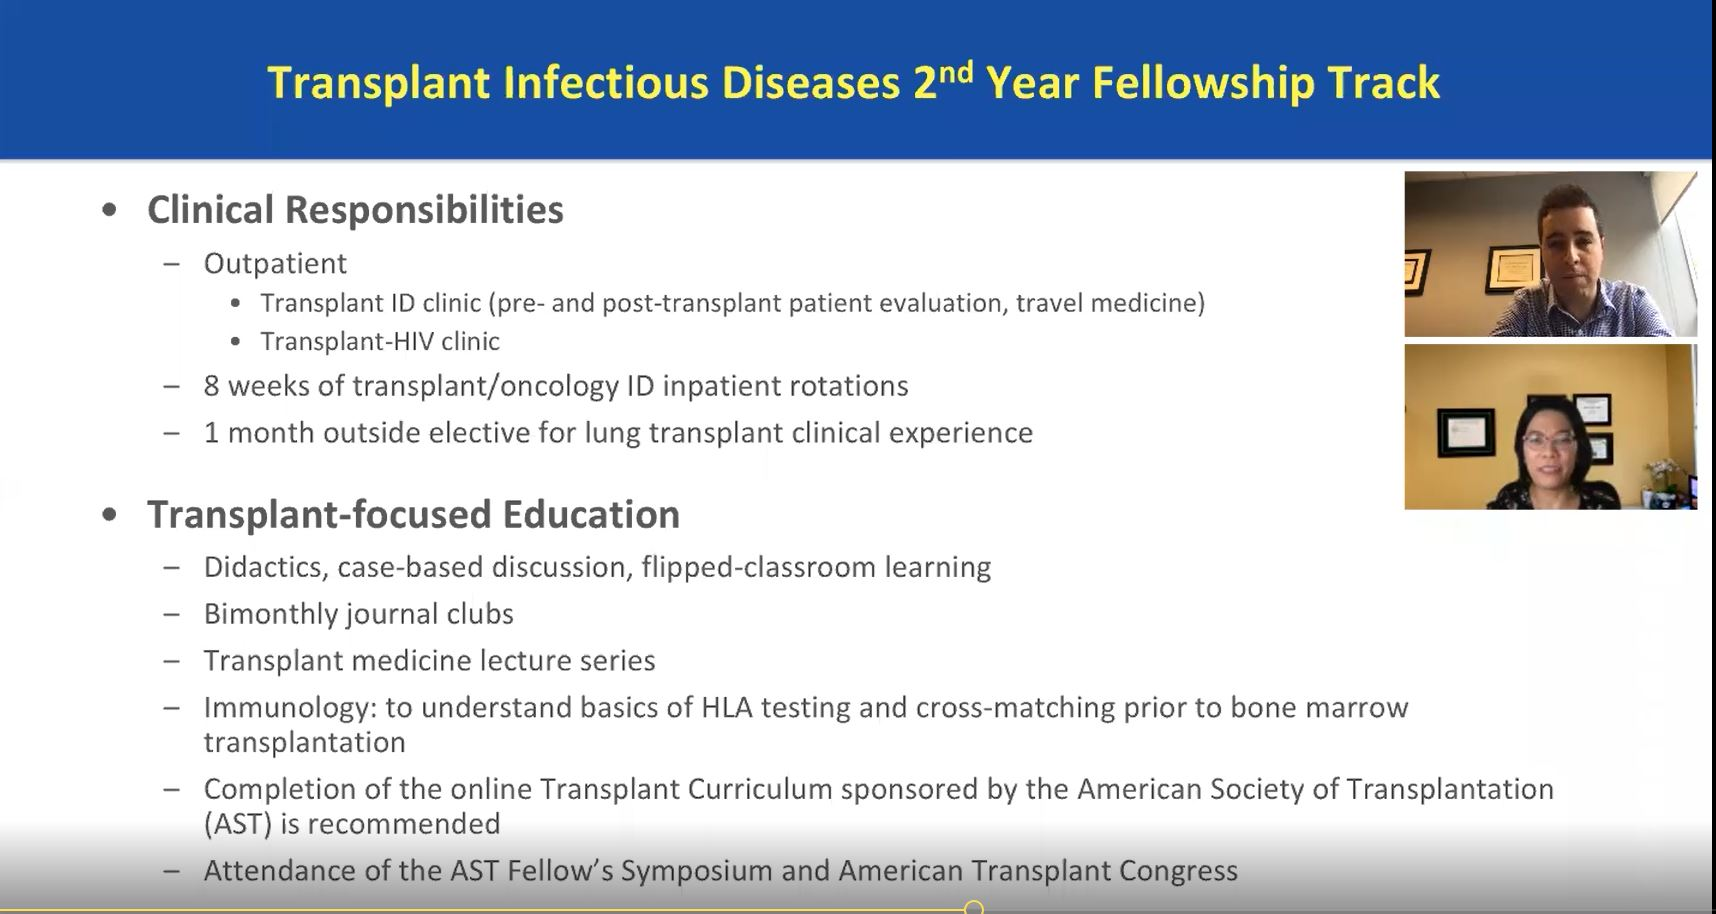 Transplant Infectious Diseases 2nd Year Fellowship Track